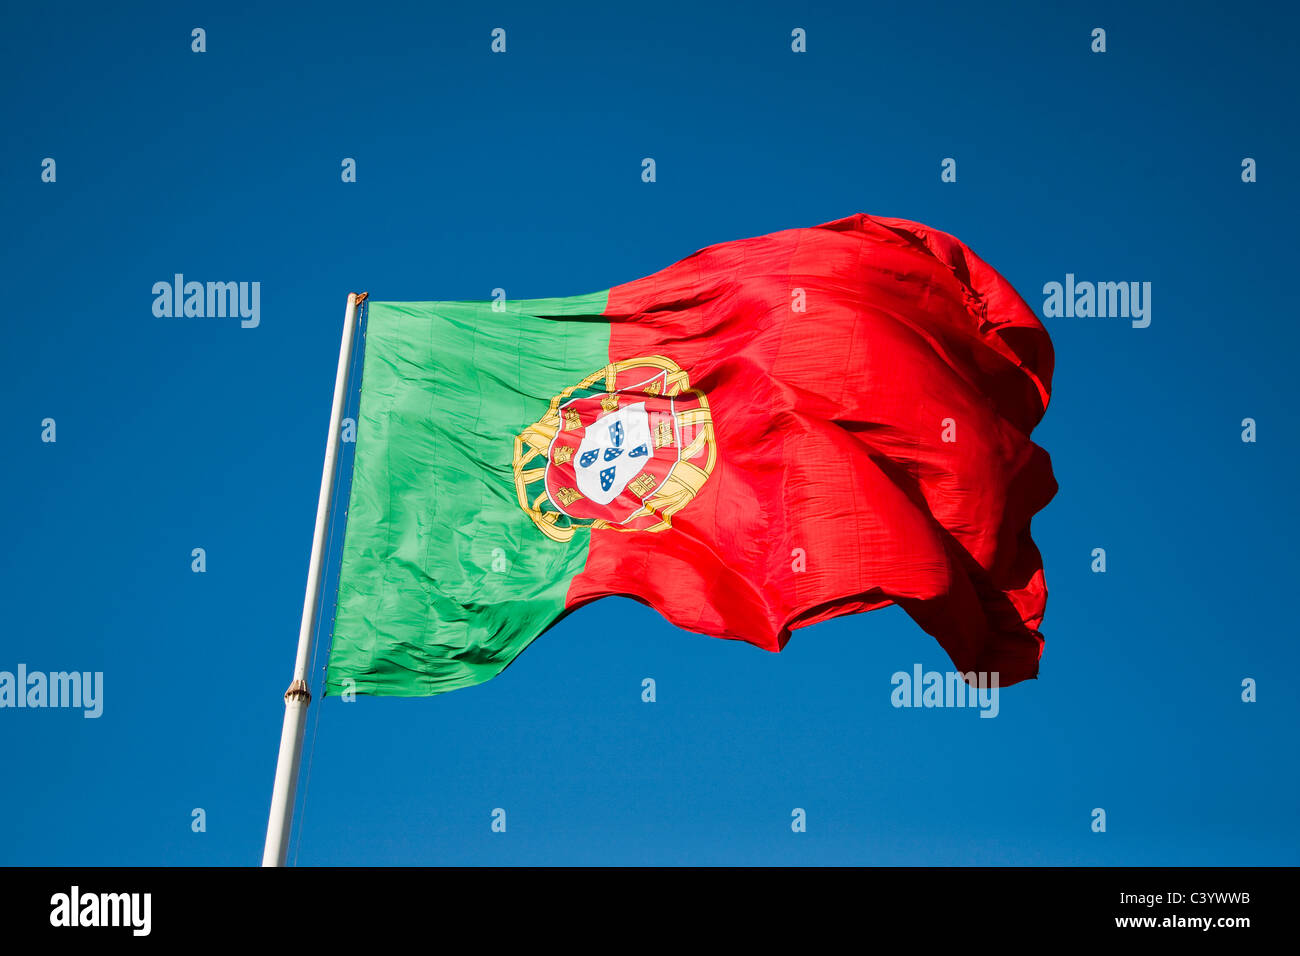 Le Portugal, l'Europe, drapeau, banderole, drapeau, vert, rouge Photo Stock